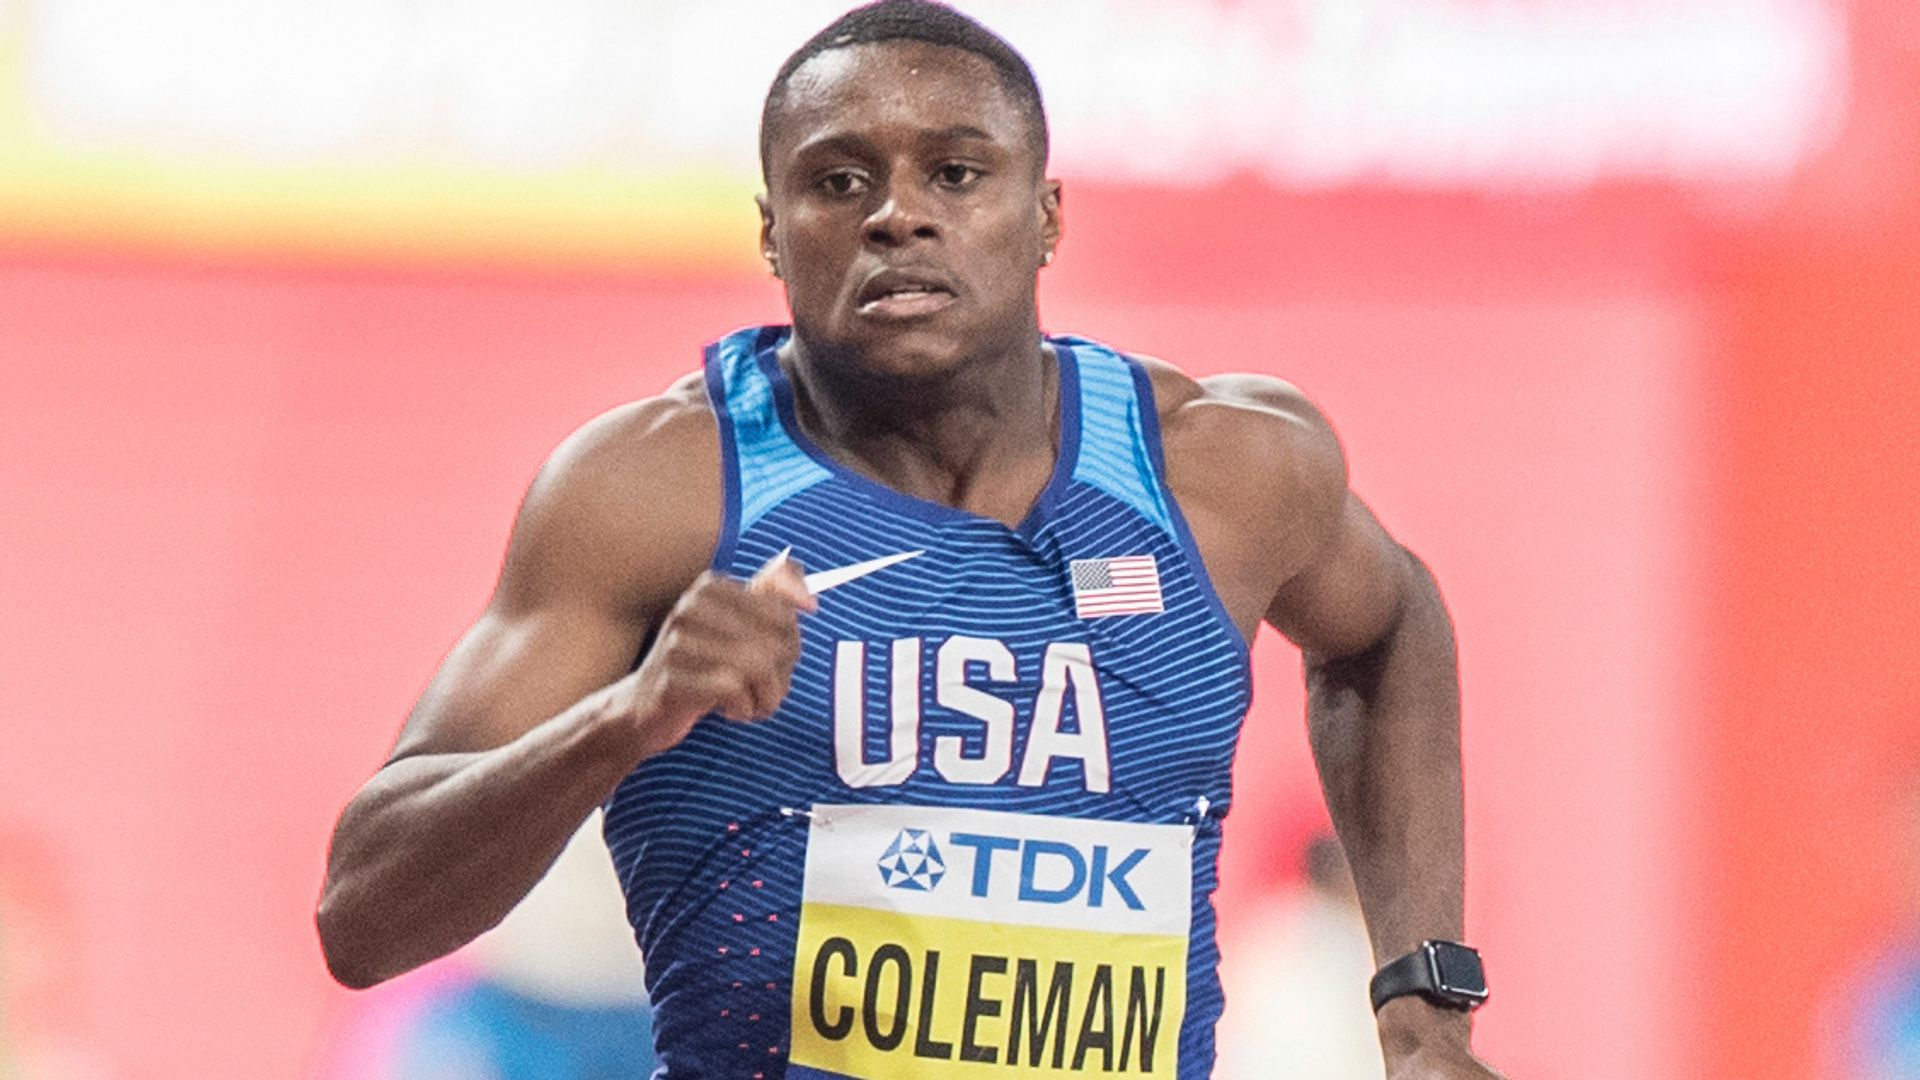 Coleman's ban reduced but will still miss Olympics